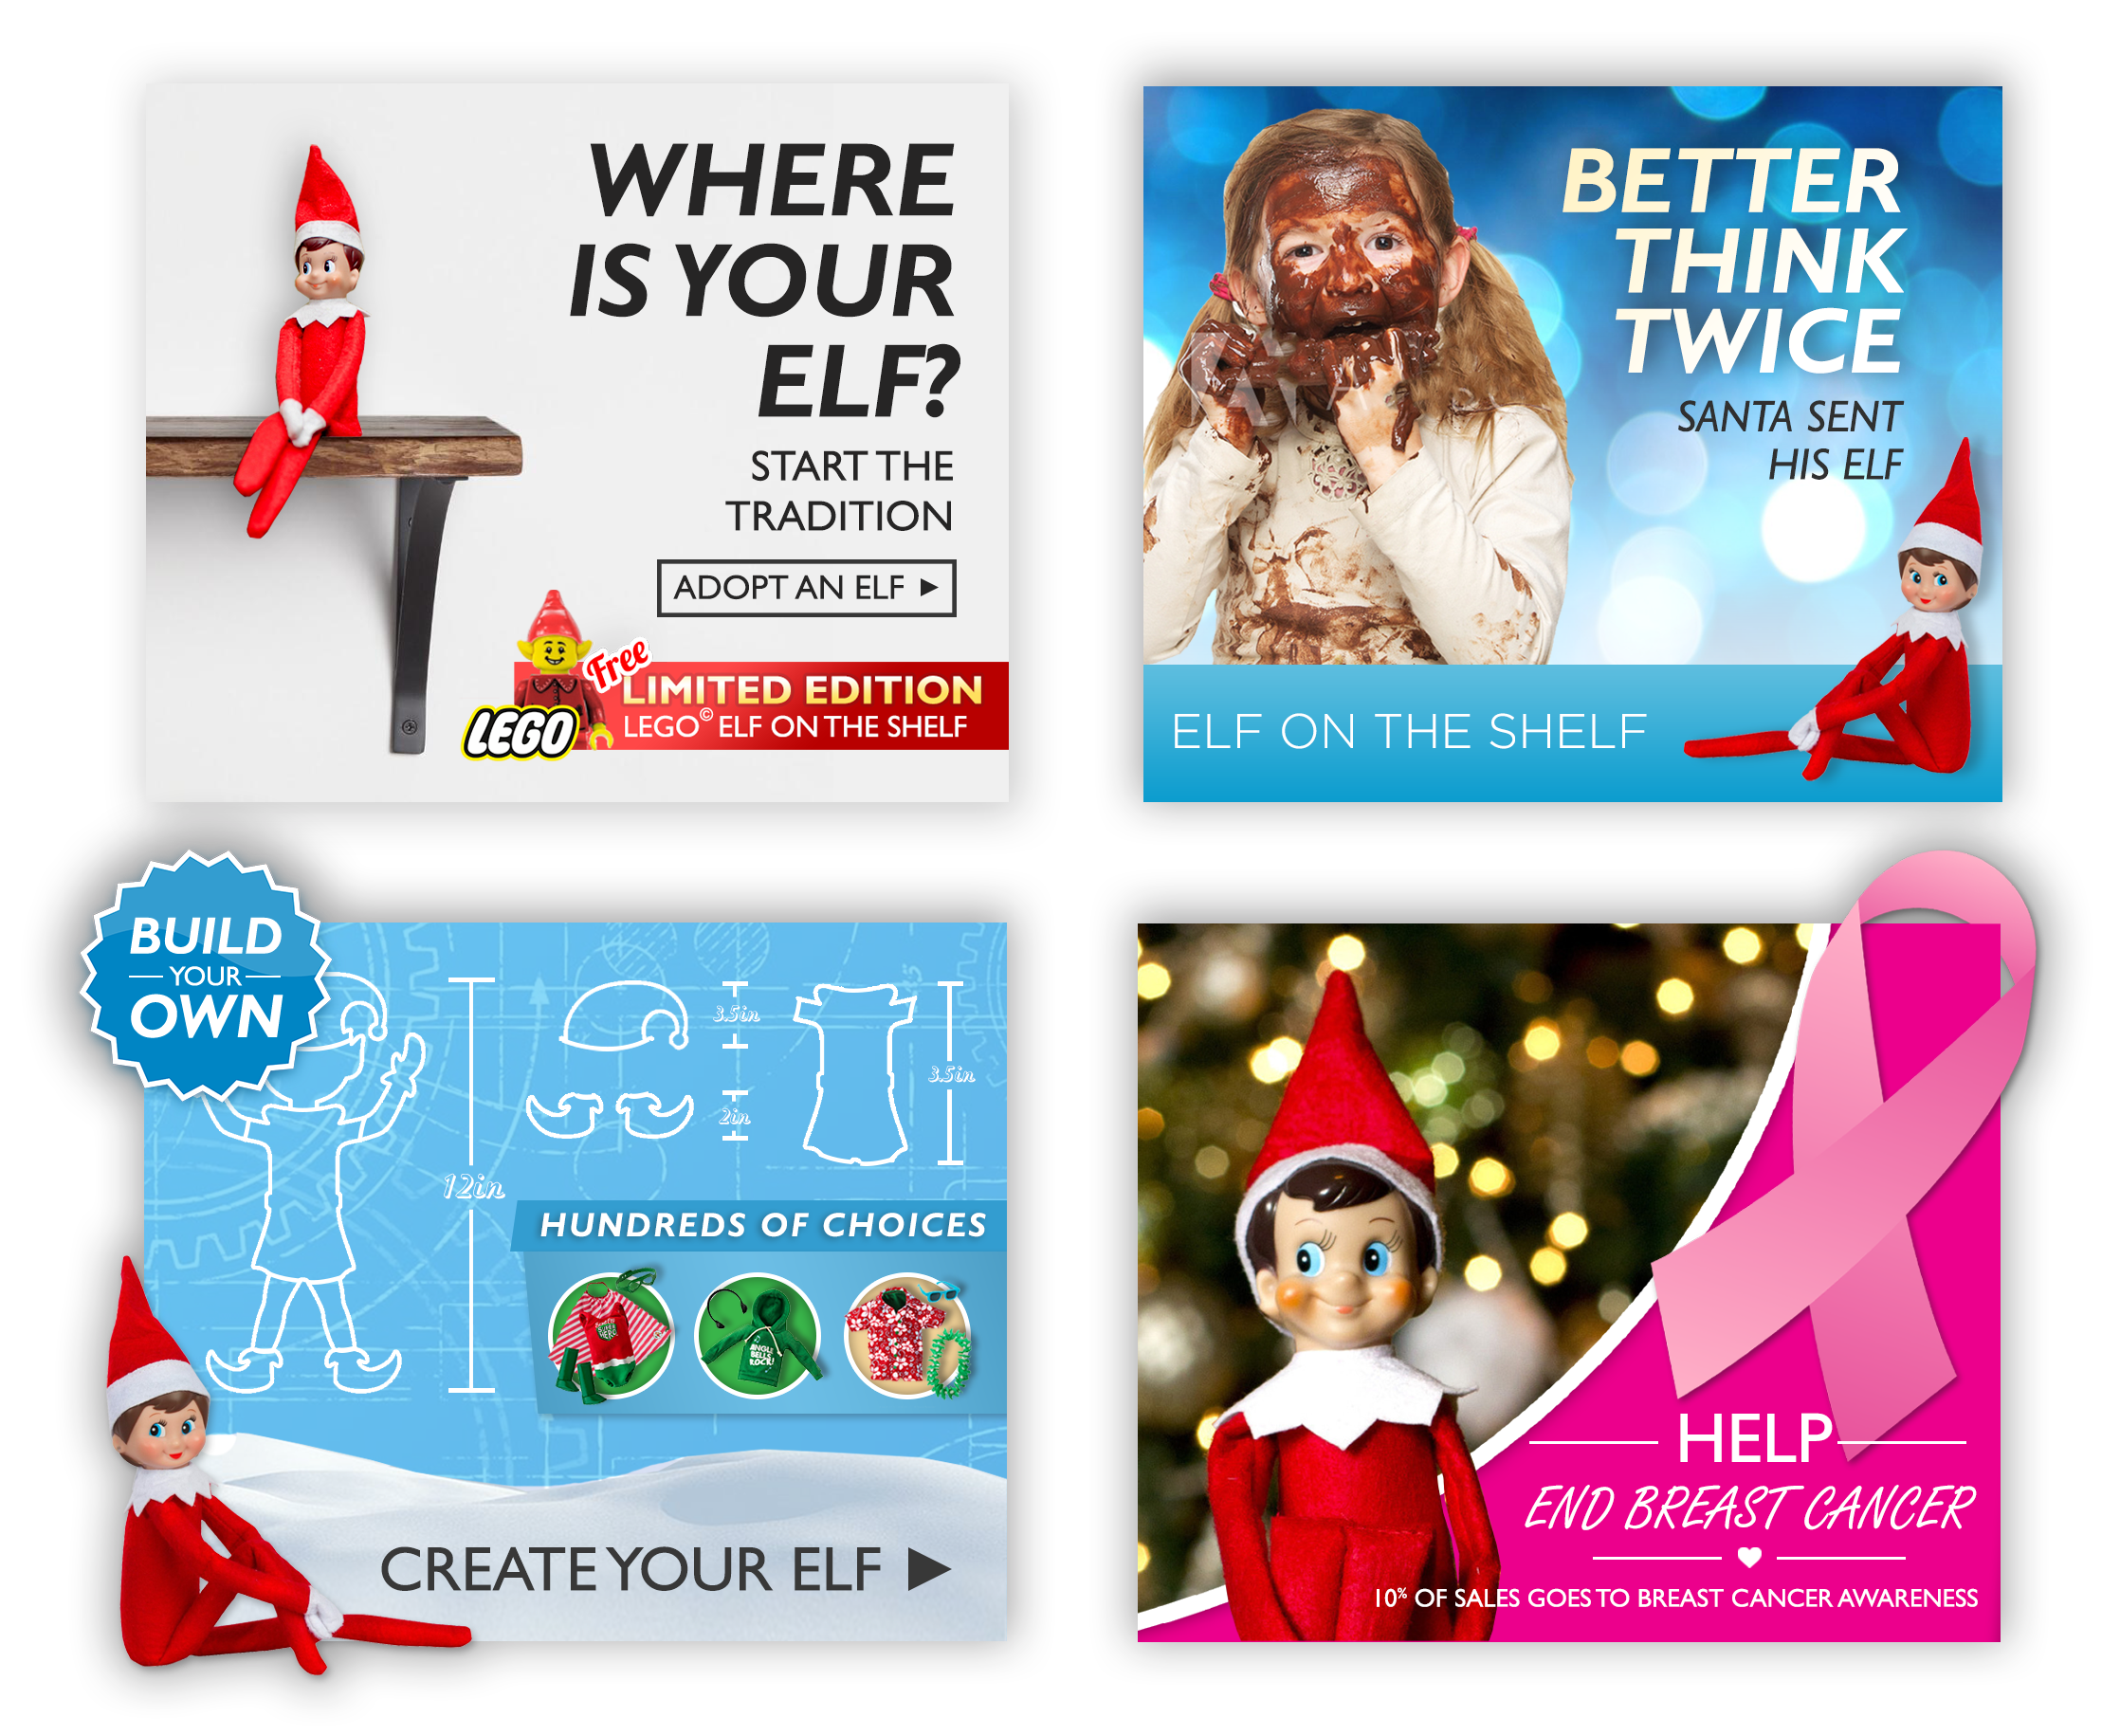 Elf on the Shelf - Original Andrew Display Ads